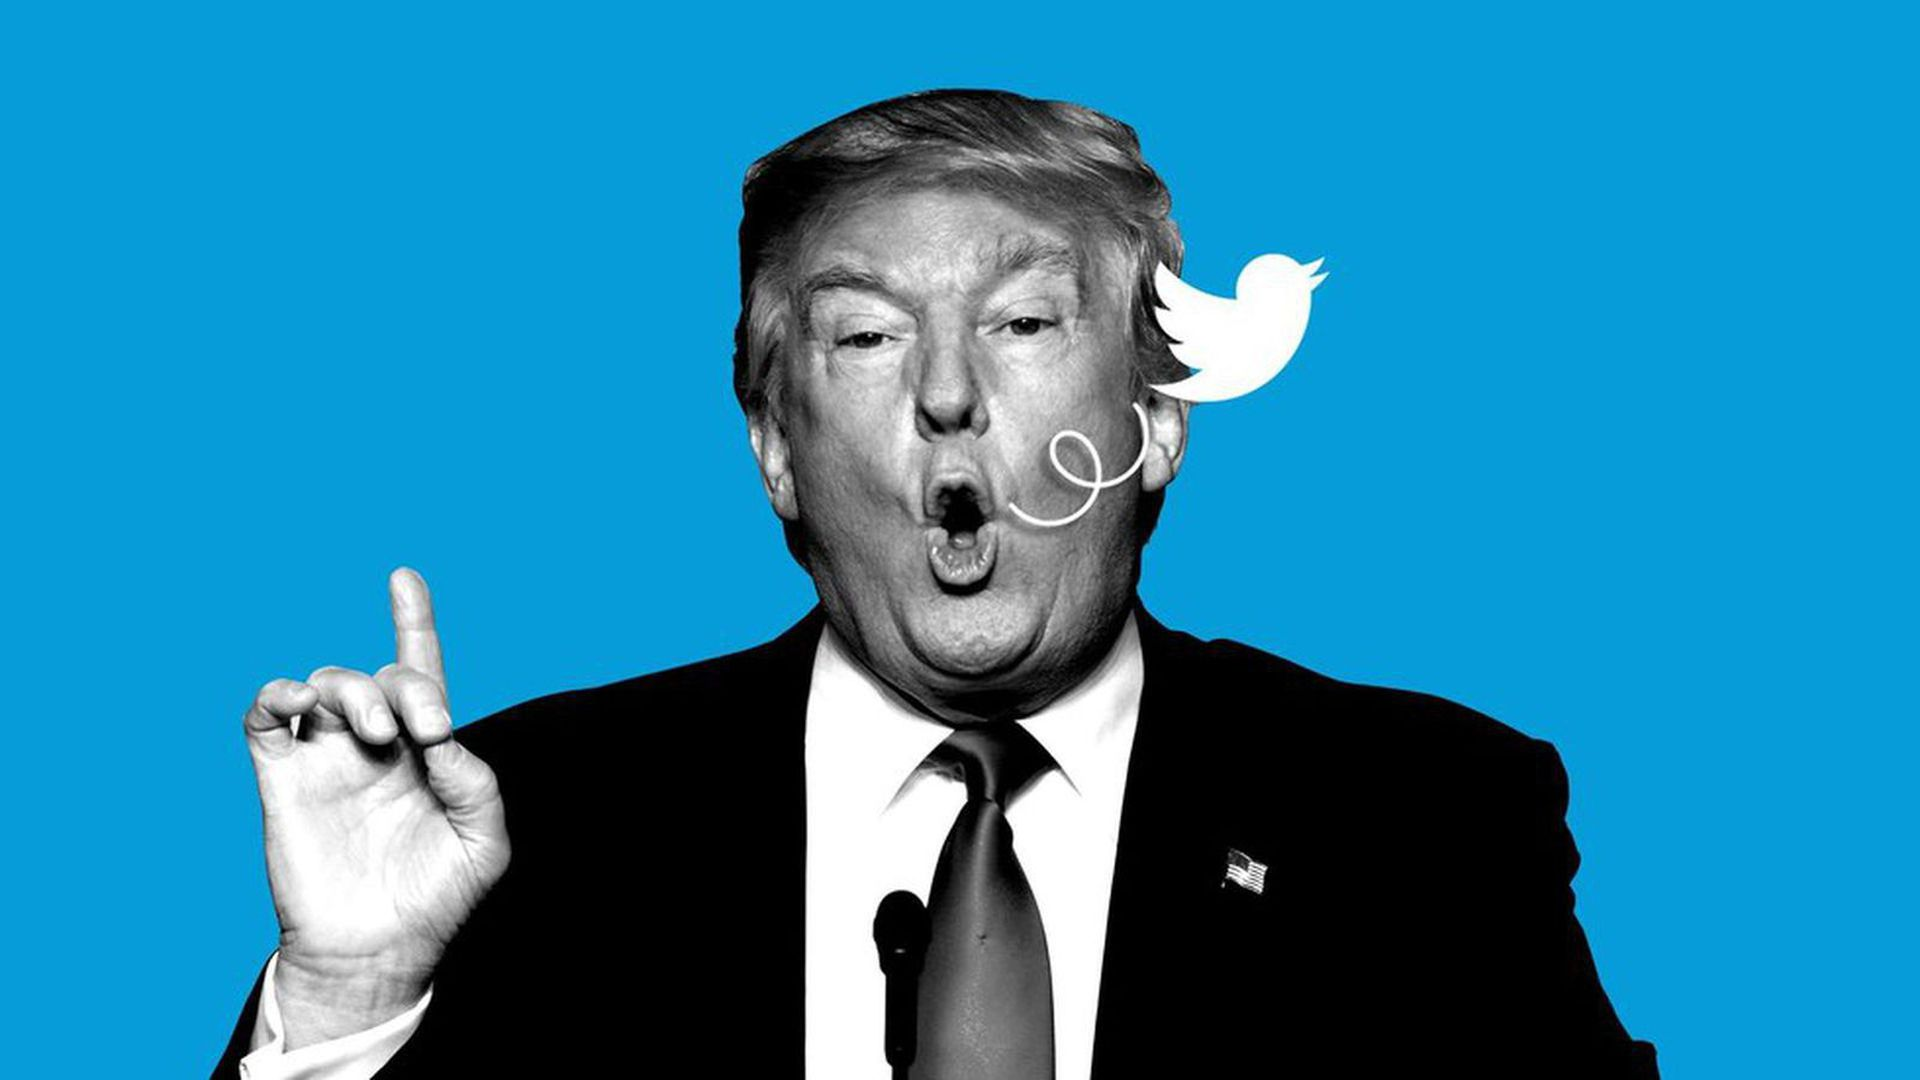 Illustration of President Trump with a Twitter bird flying out of his mouth